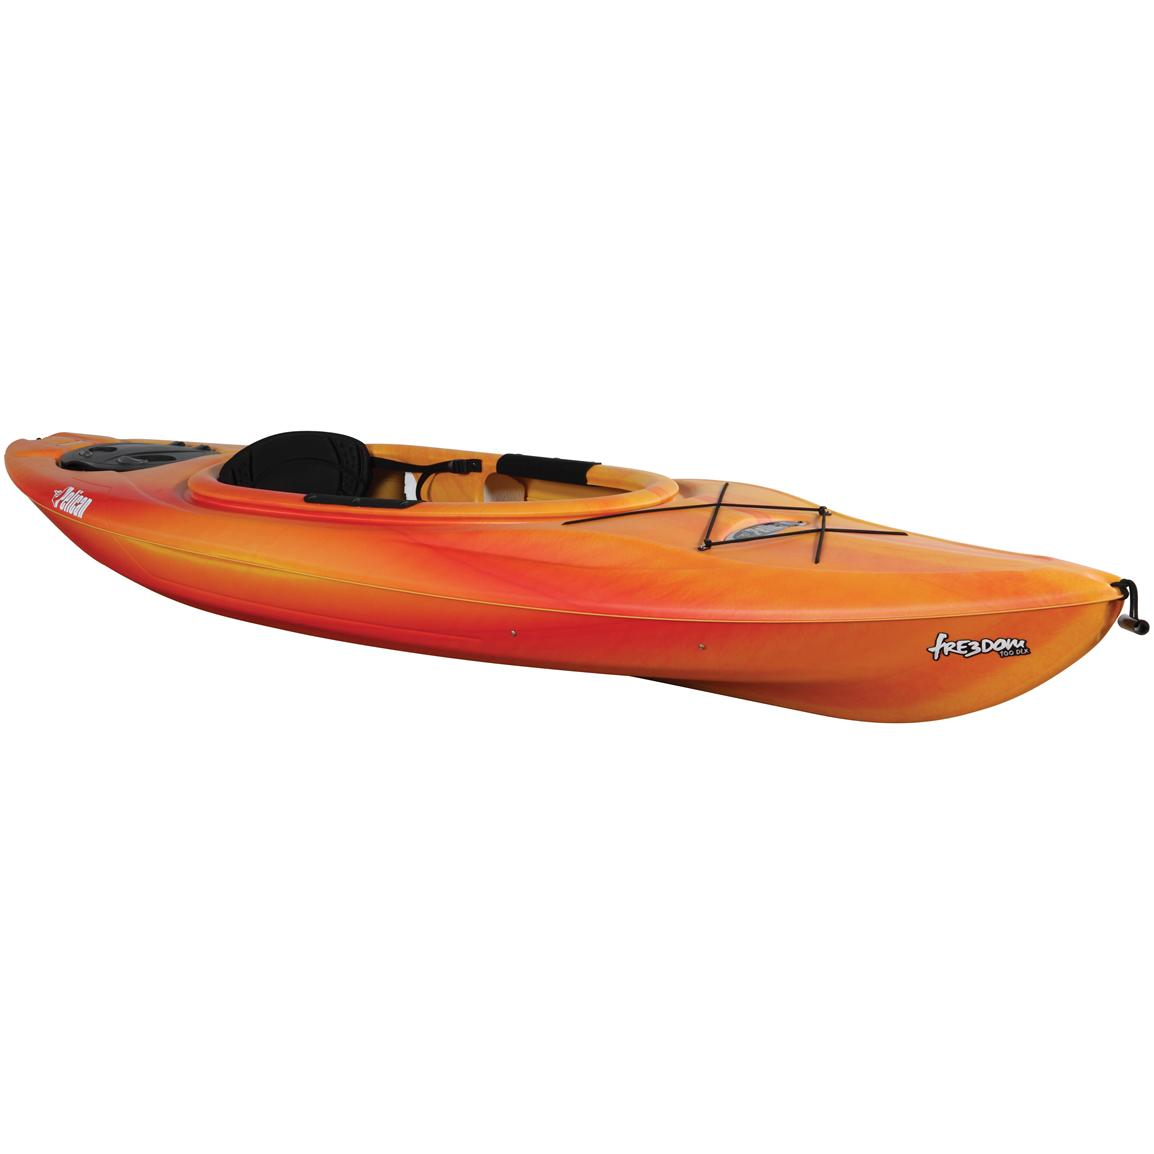 Pelican™ Freedom 100 DLX Kayak, Red / Yellow